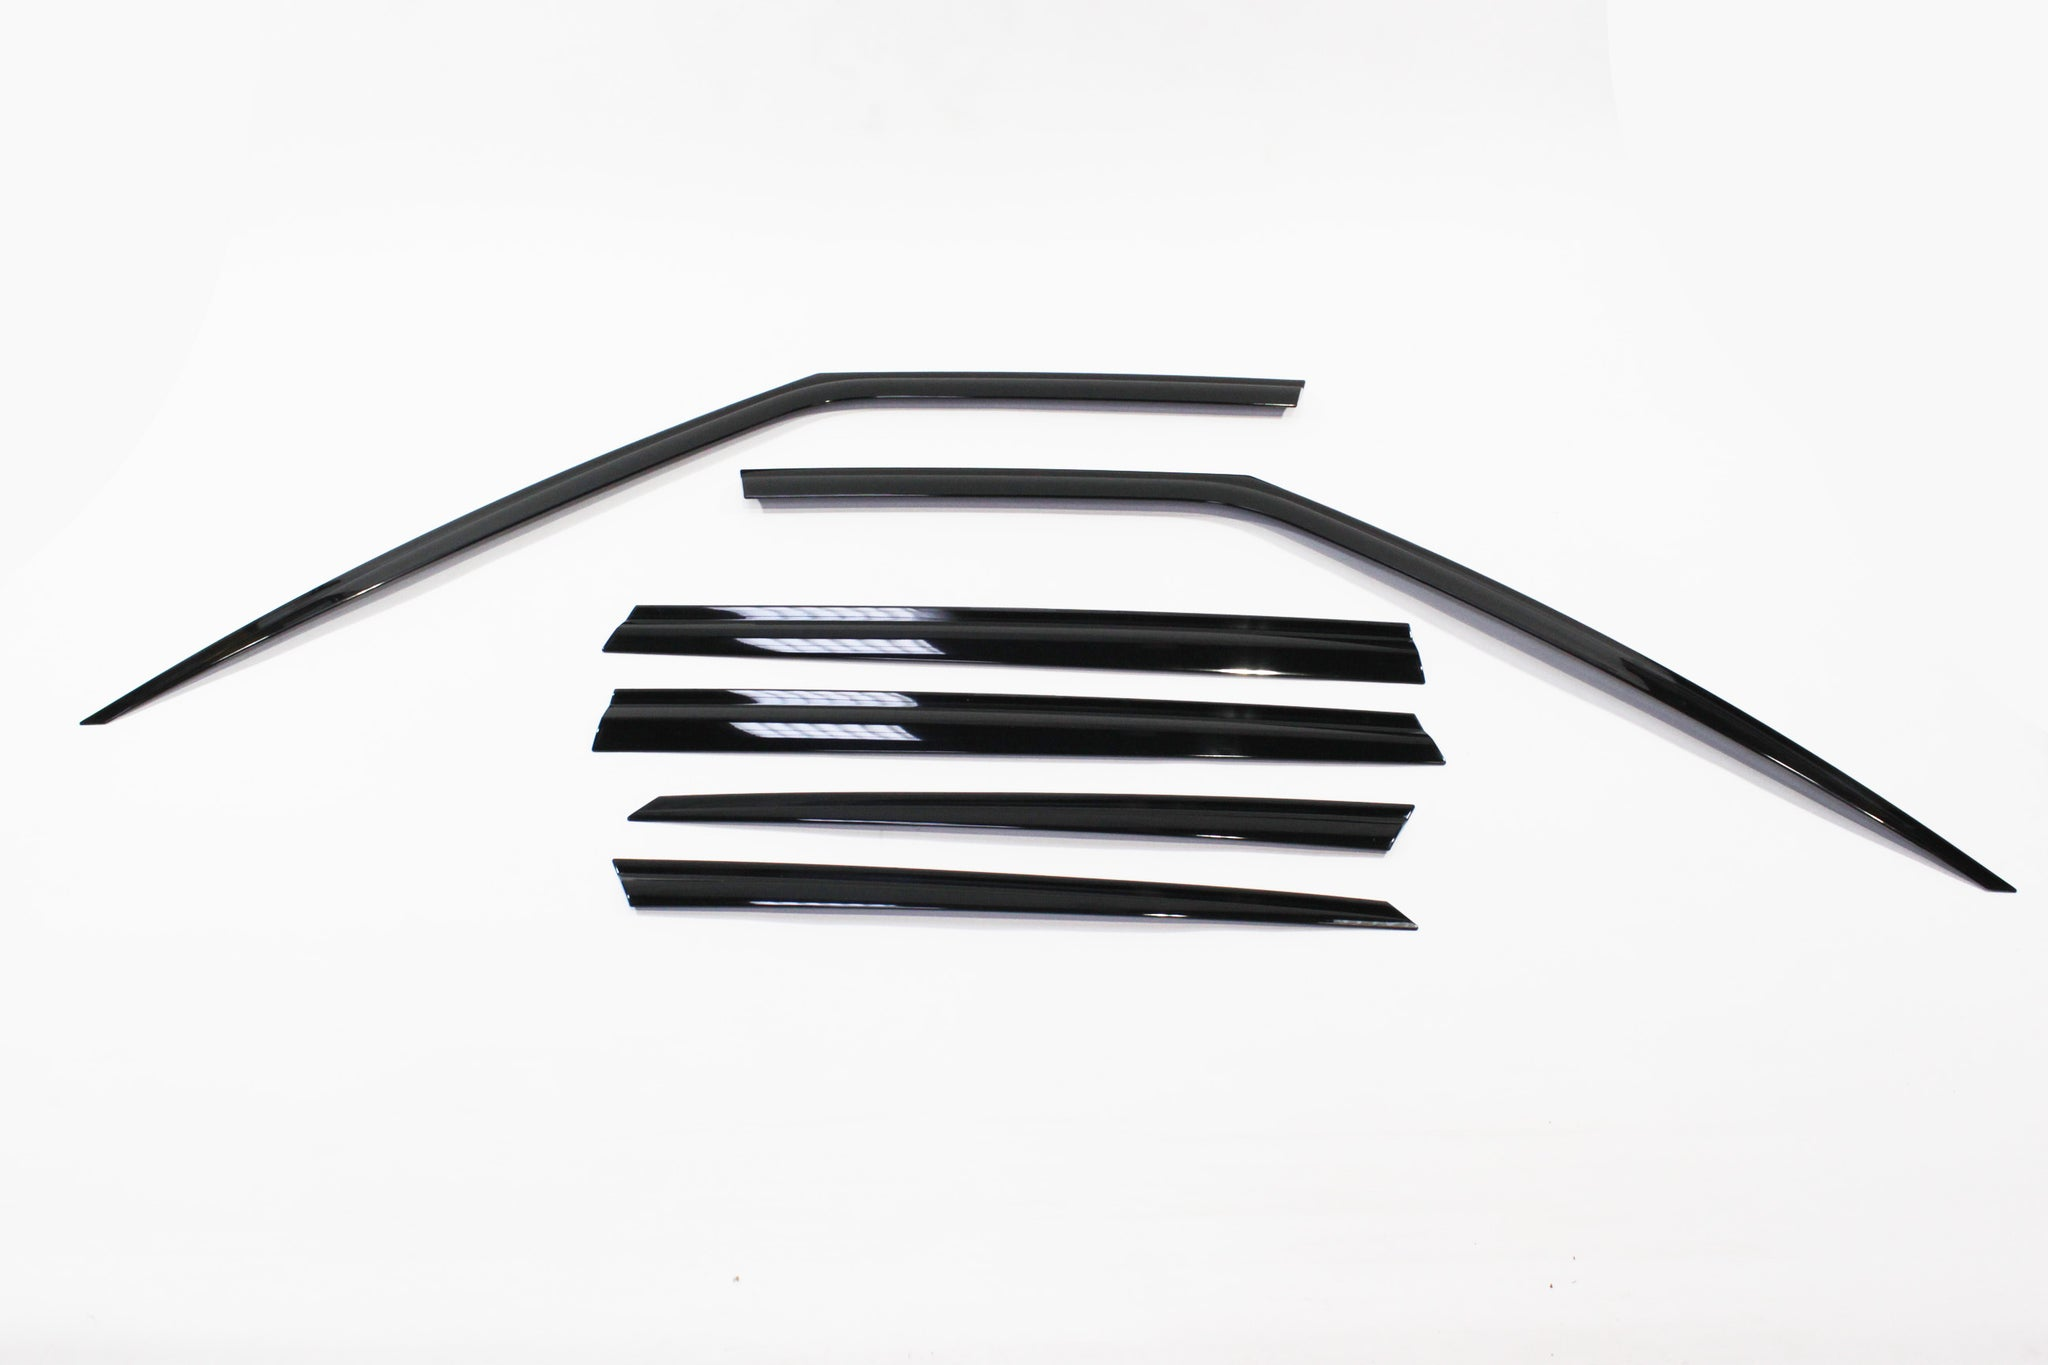 Auto Clover Wind Deflectors for Land Rover Range Rover